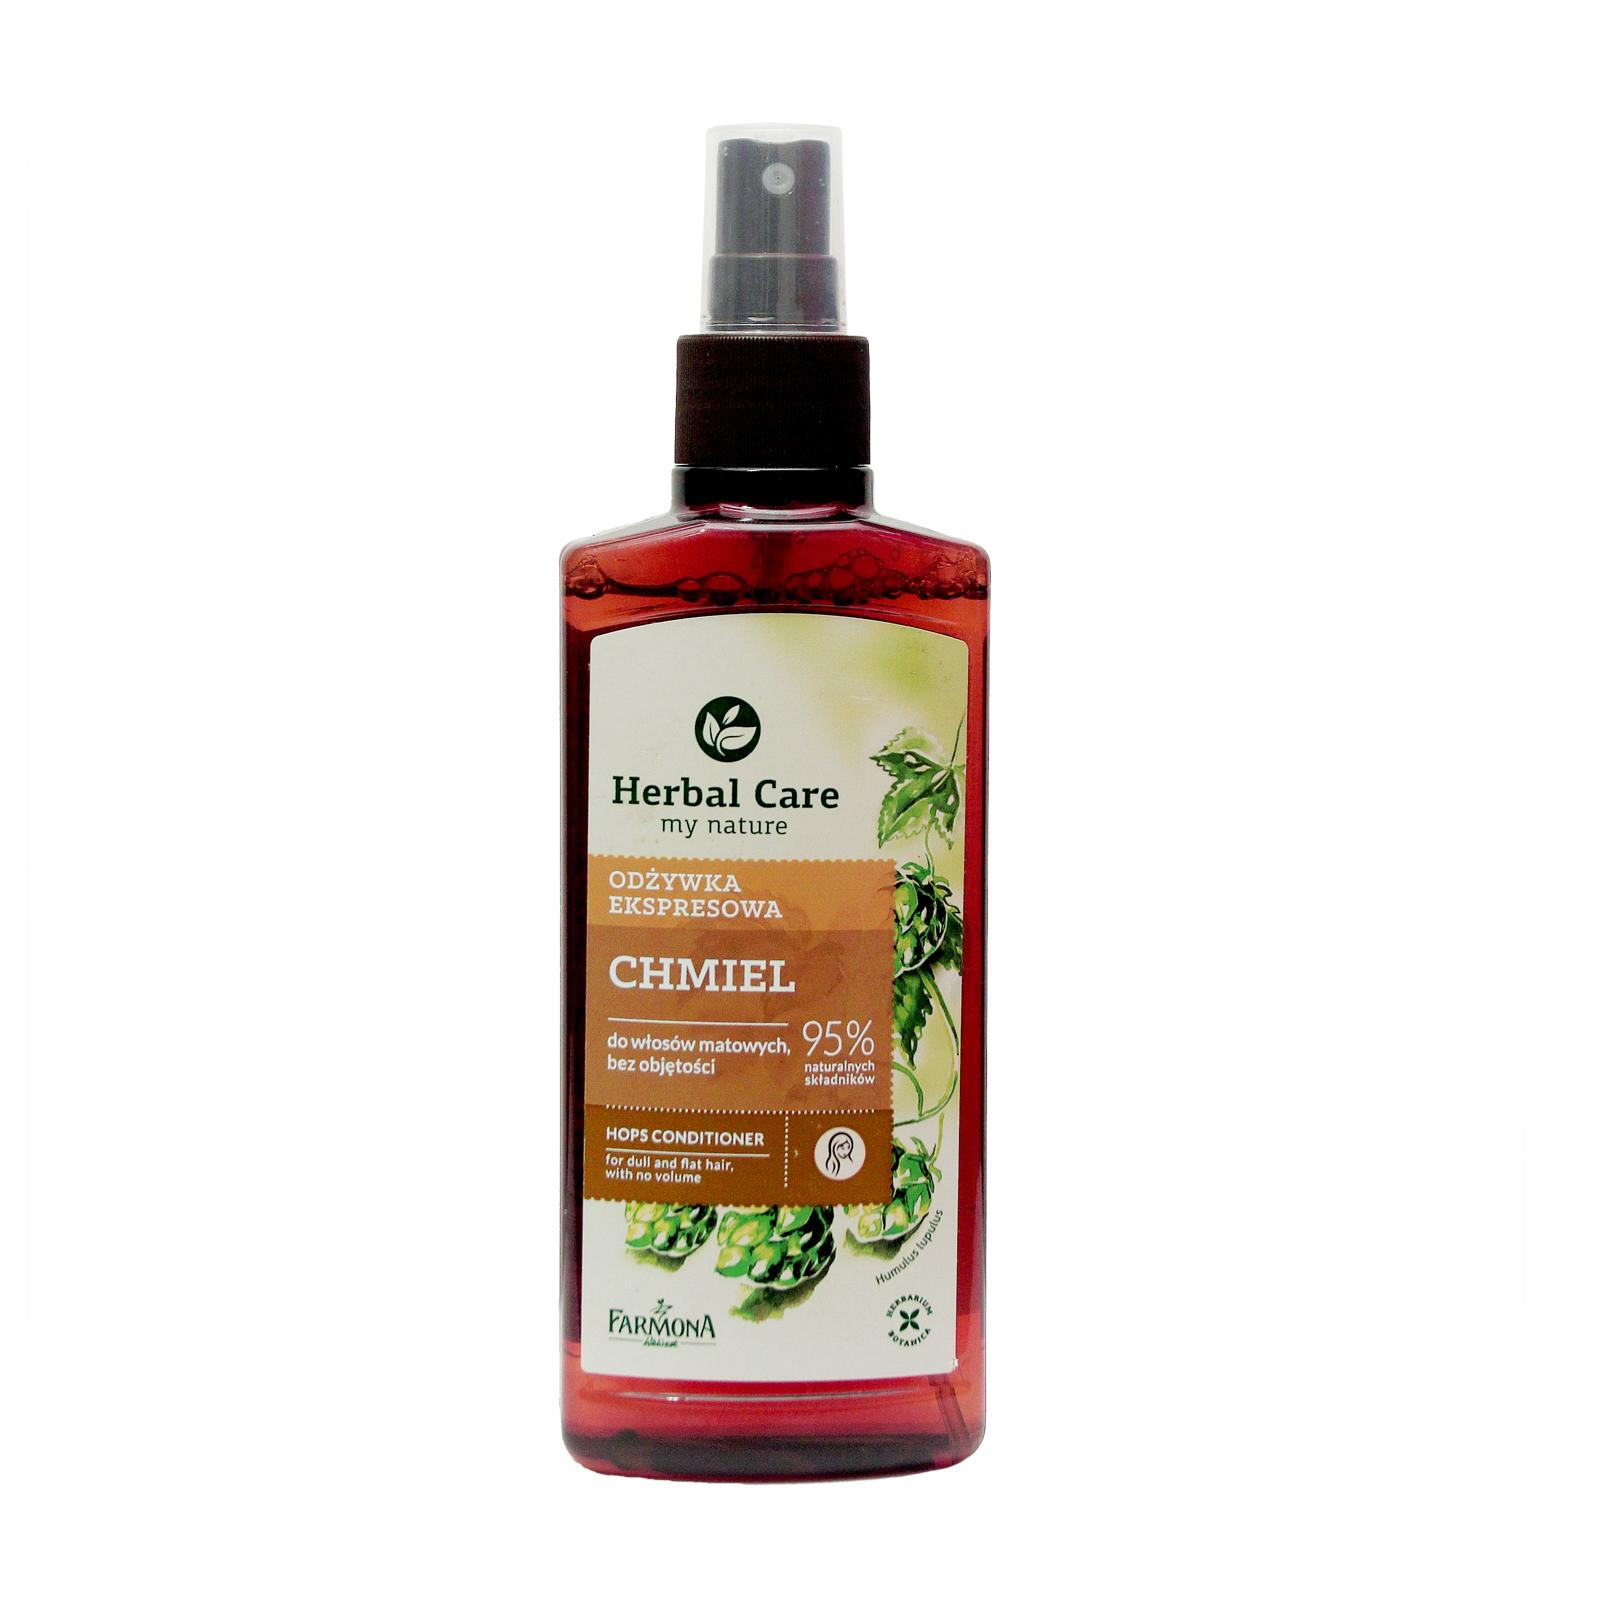 Herbal Care Hops Conditioning Spray